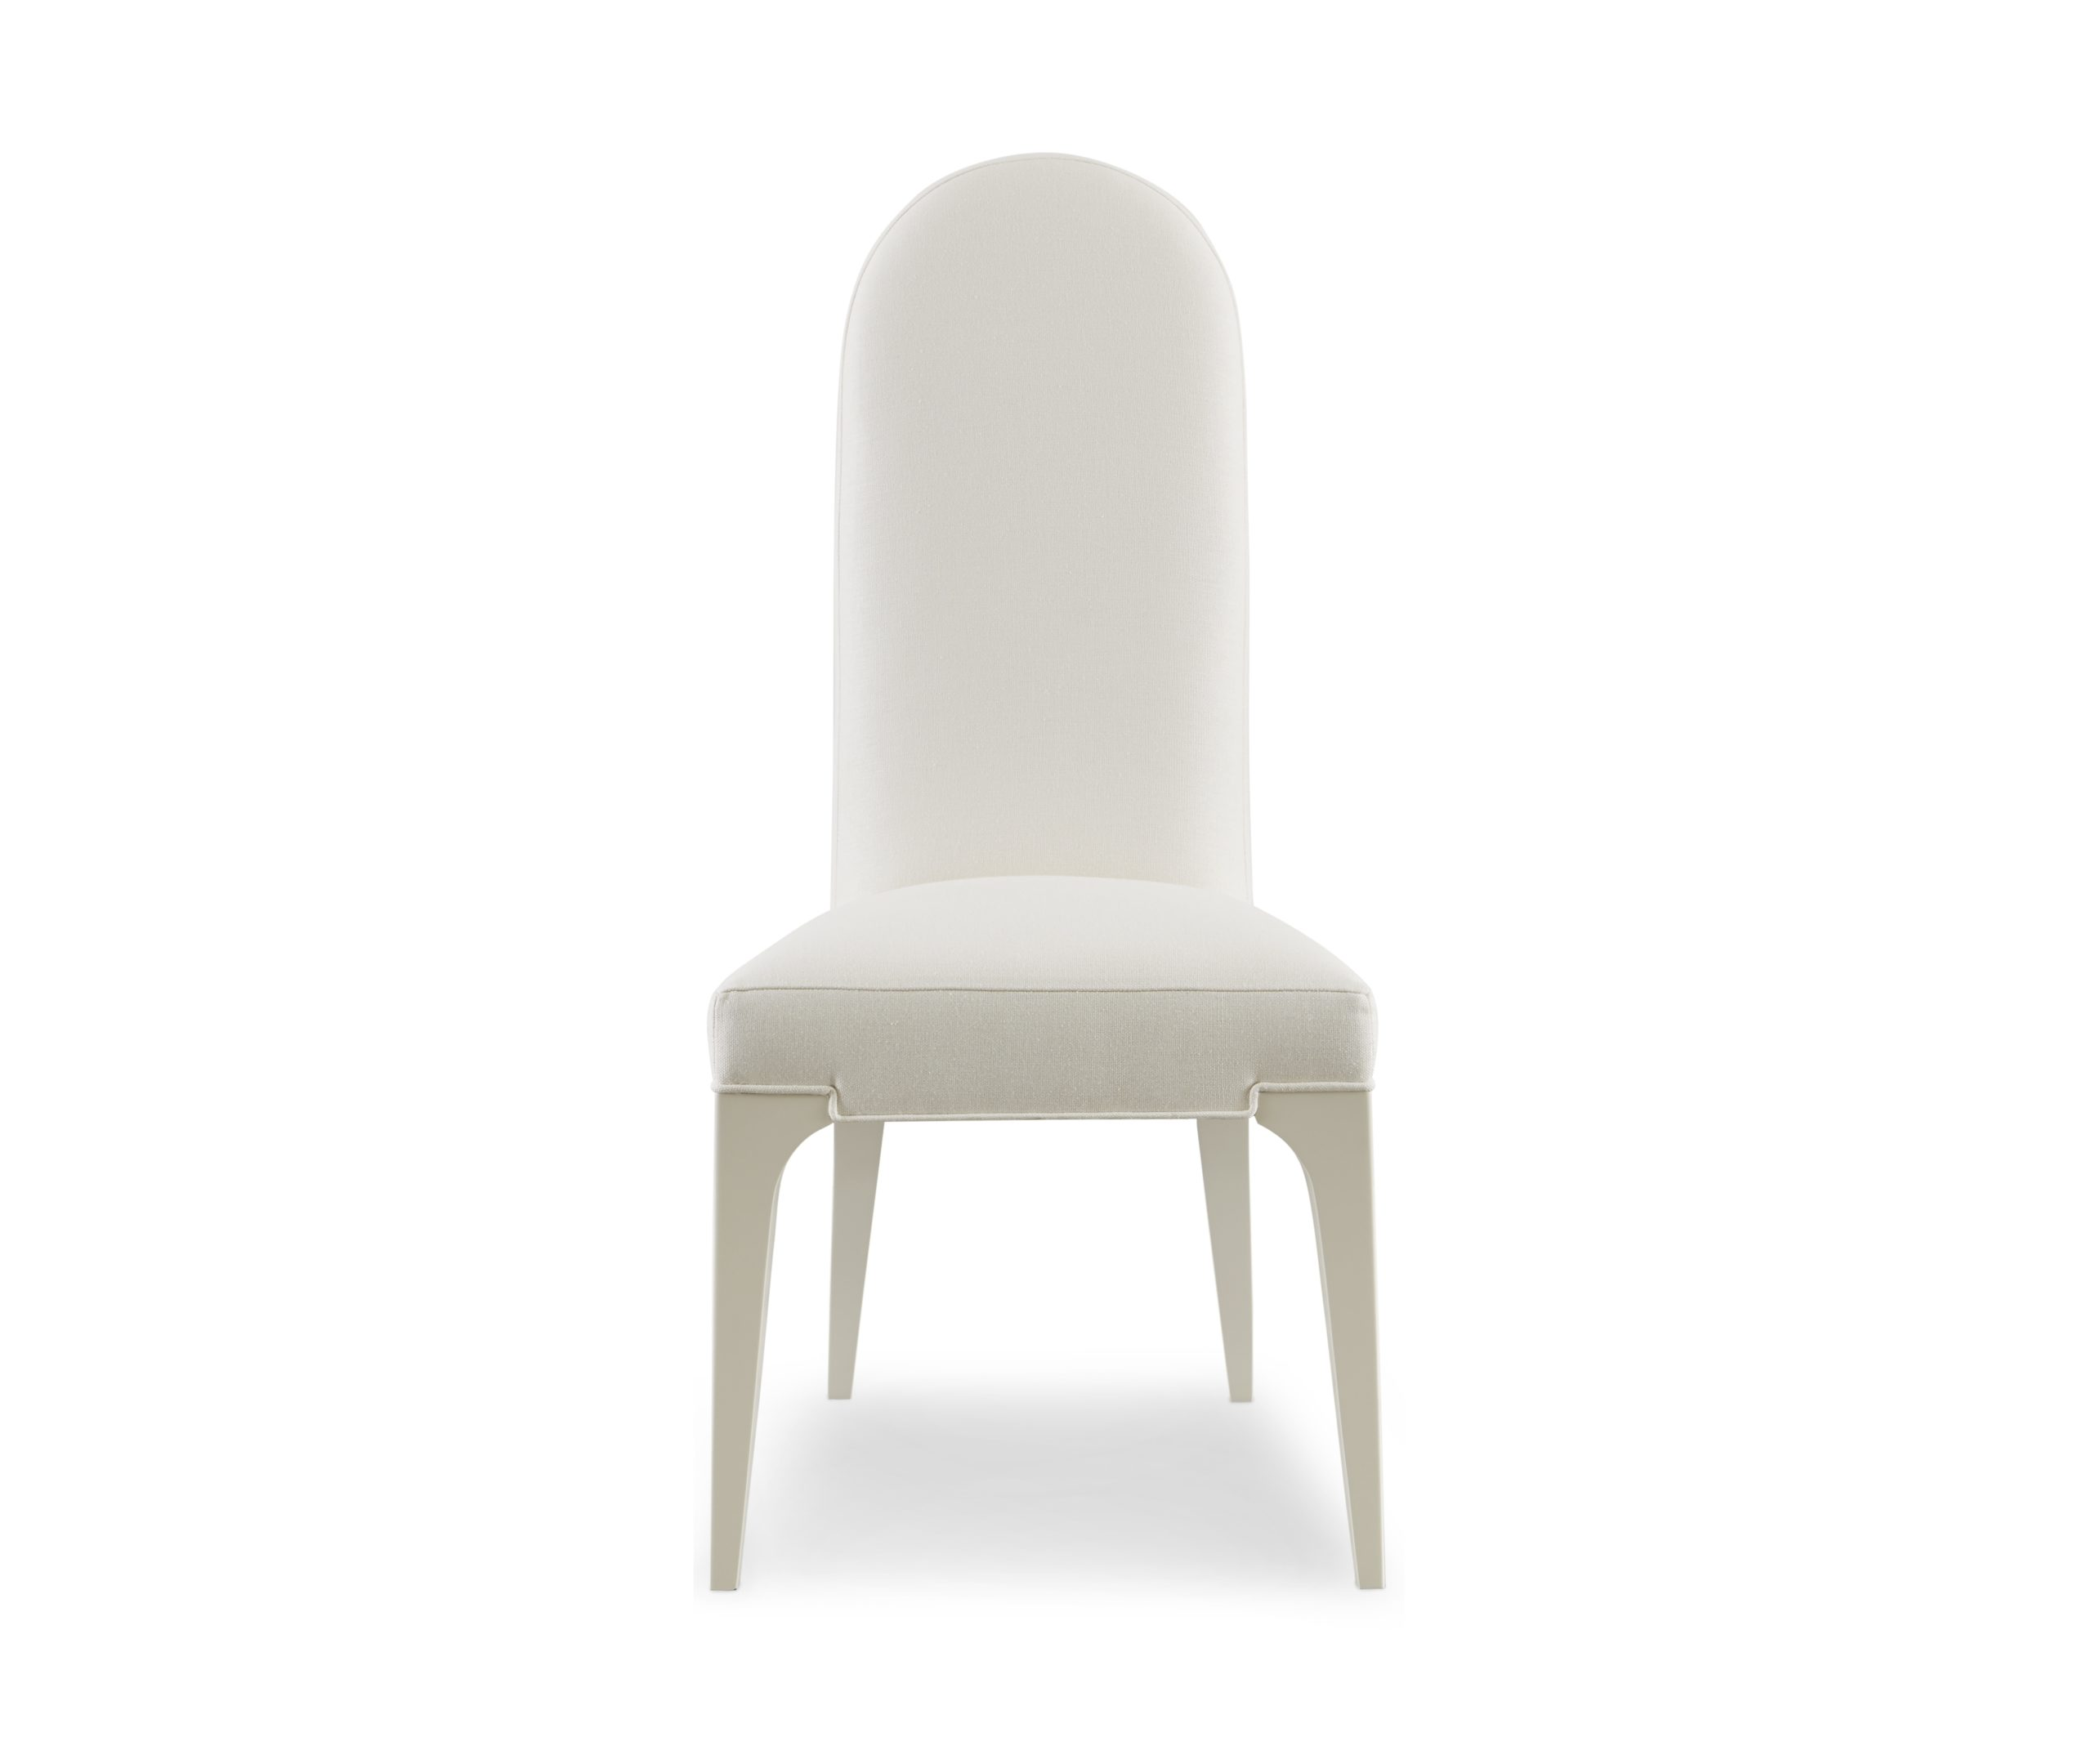 Baker_products_WNWN_declan_chair_BAA3041_FRONT-scaled-2